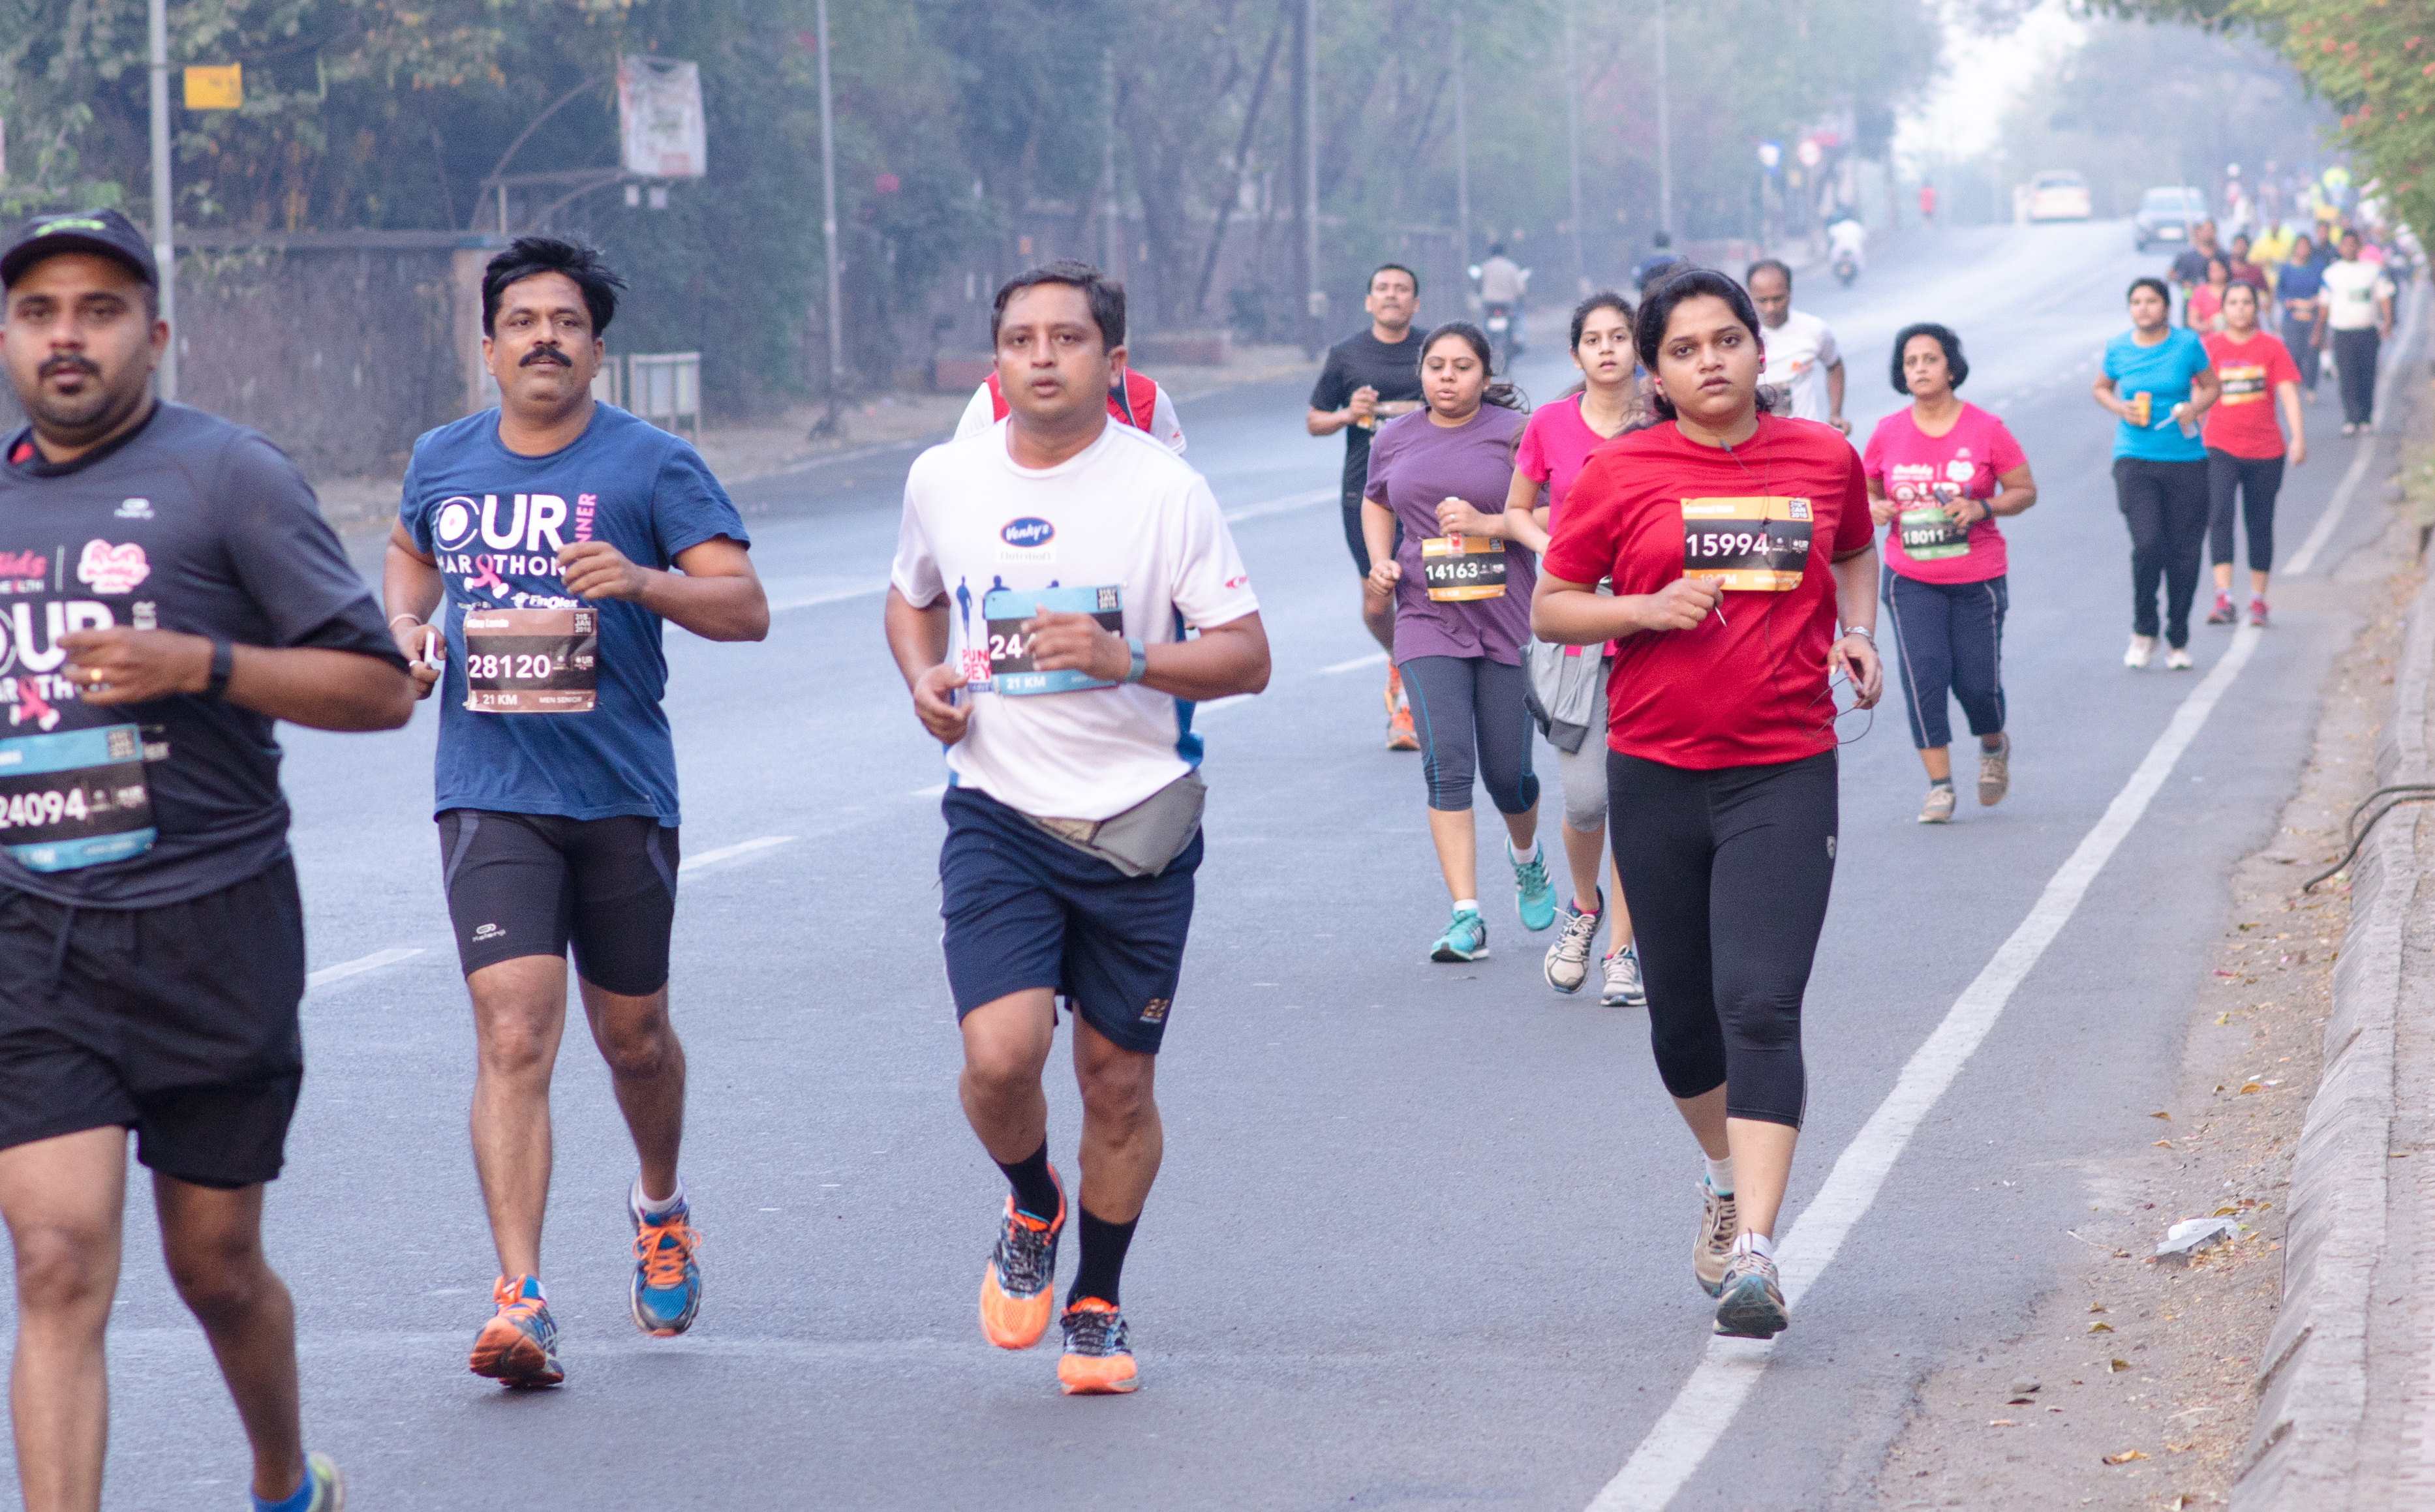 The 21km half-marathon will be a single-loop race from the City Centre to the Kolkata Gate in New Town and back